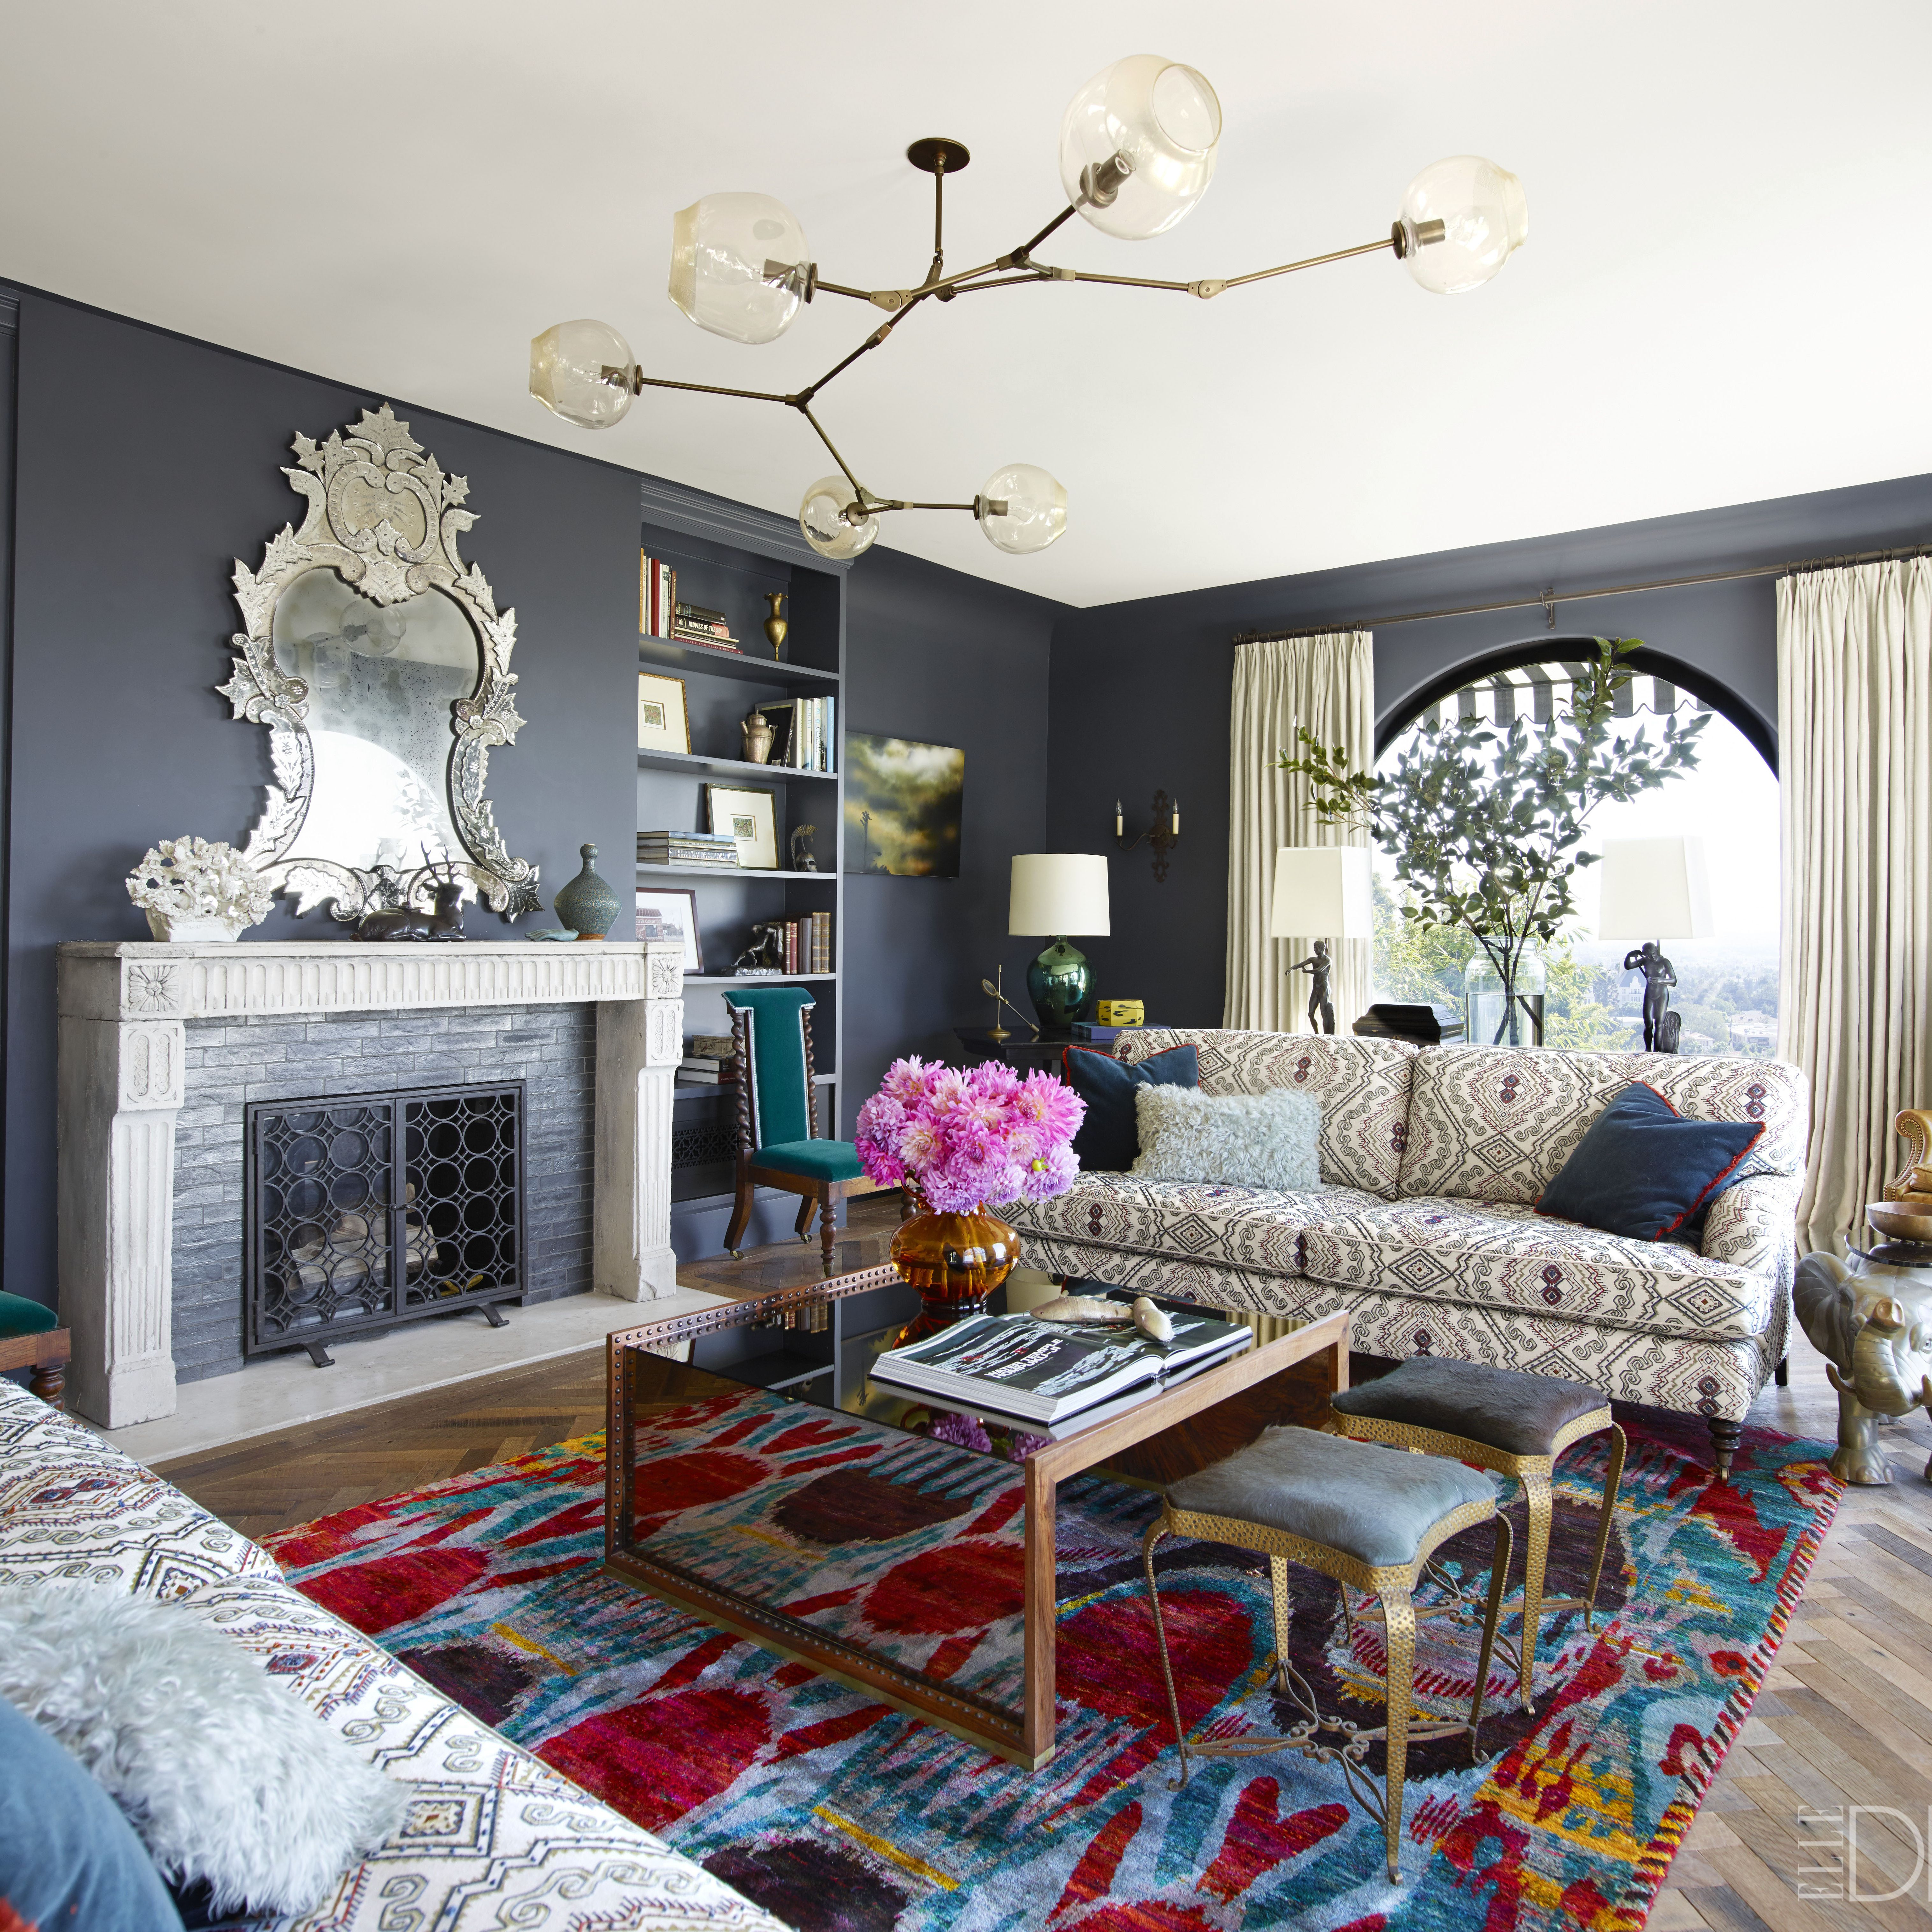 The living room of the Hollywood Hills home of Jamie Tarses and Paddy Aubrey, which was designed and renovated by Pamela Shamshiri of Commune Design. The sofas by George Smith are upholstered in an Oscar de la Renta for Lee Jofa fabric&#x3B; the cocktail table is a custom design, and the stools from Hollywood at Home and wing chair are vintage. The ceiling fixture is by Lindsey Adelman, the vintage mirror is from JF Chen, the fireplace is original to the house, and the walls are painted in Benjamin Moore's Hale Navy.